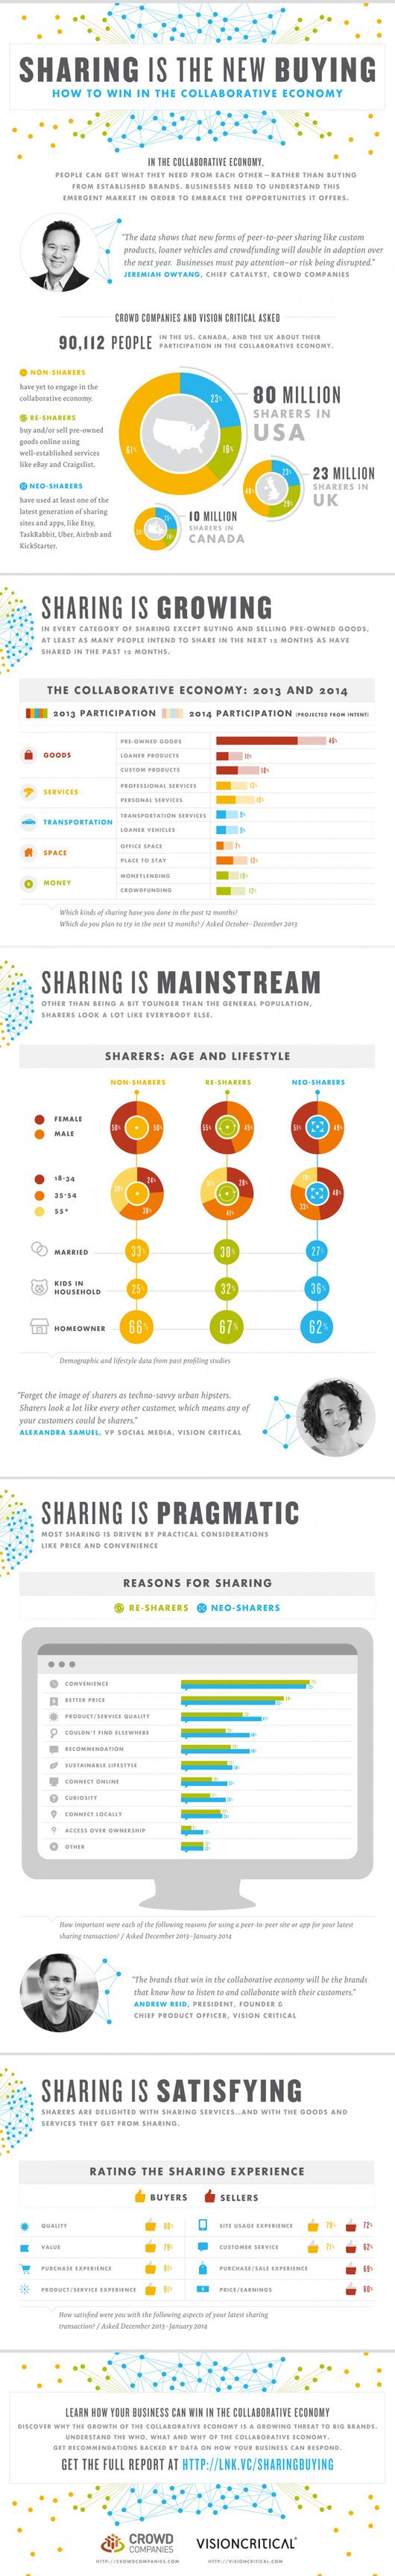 Infographic: How to win in the collaborative economy > Shared by Catura Creative http://caturacreative.com